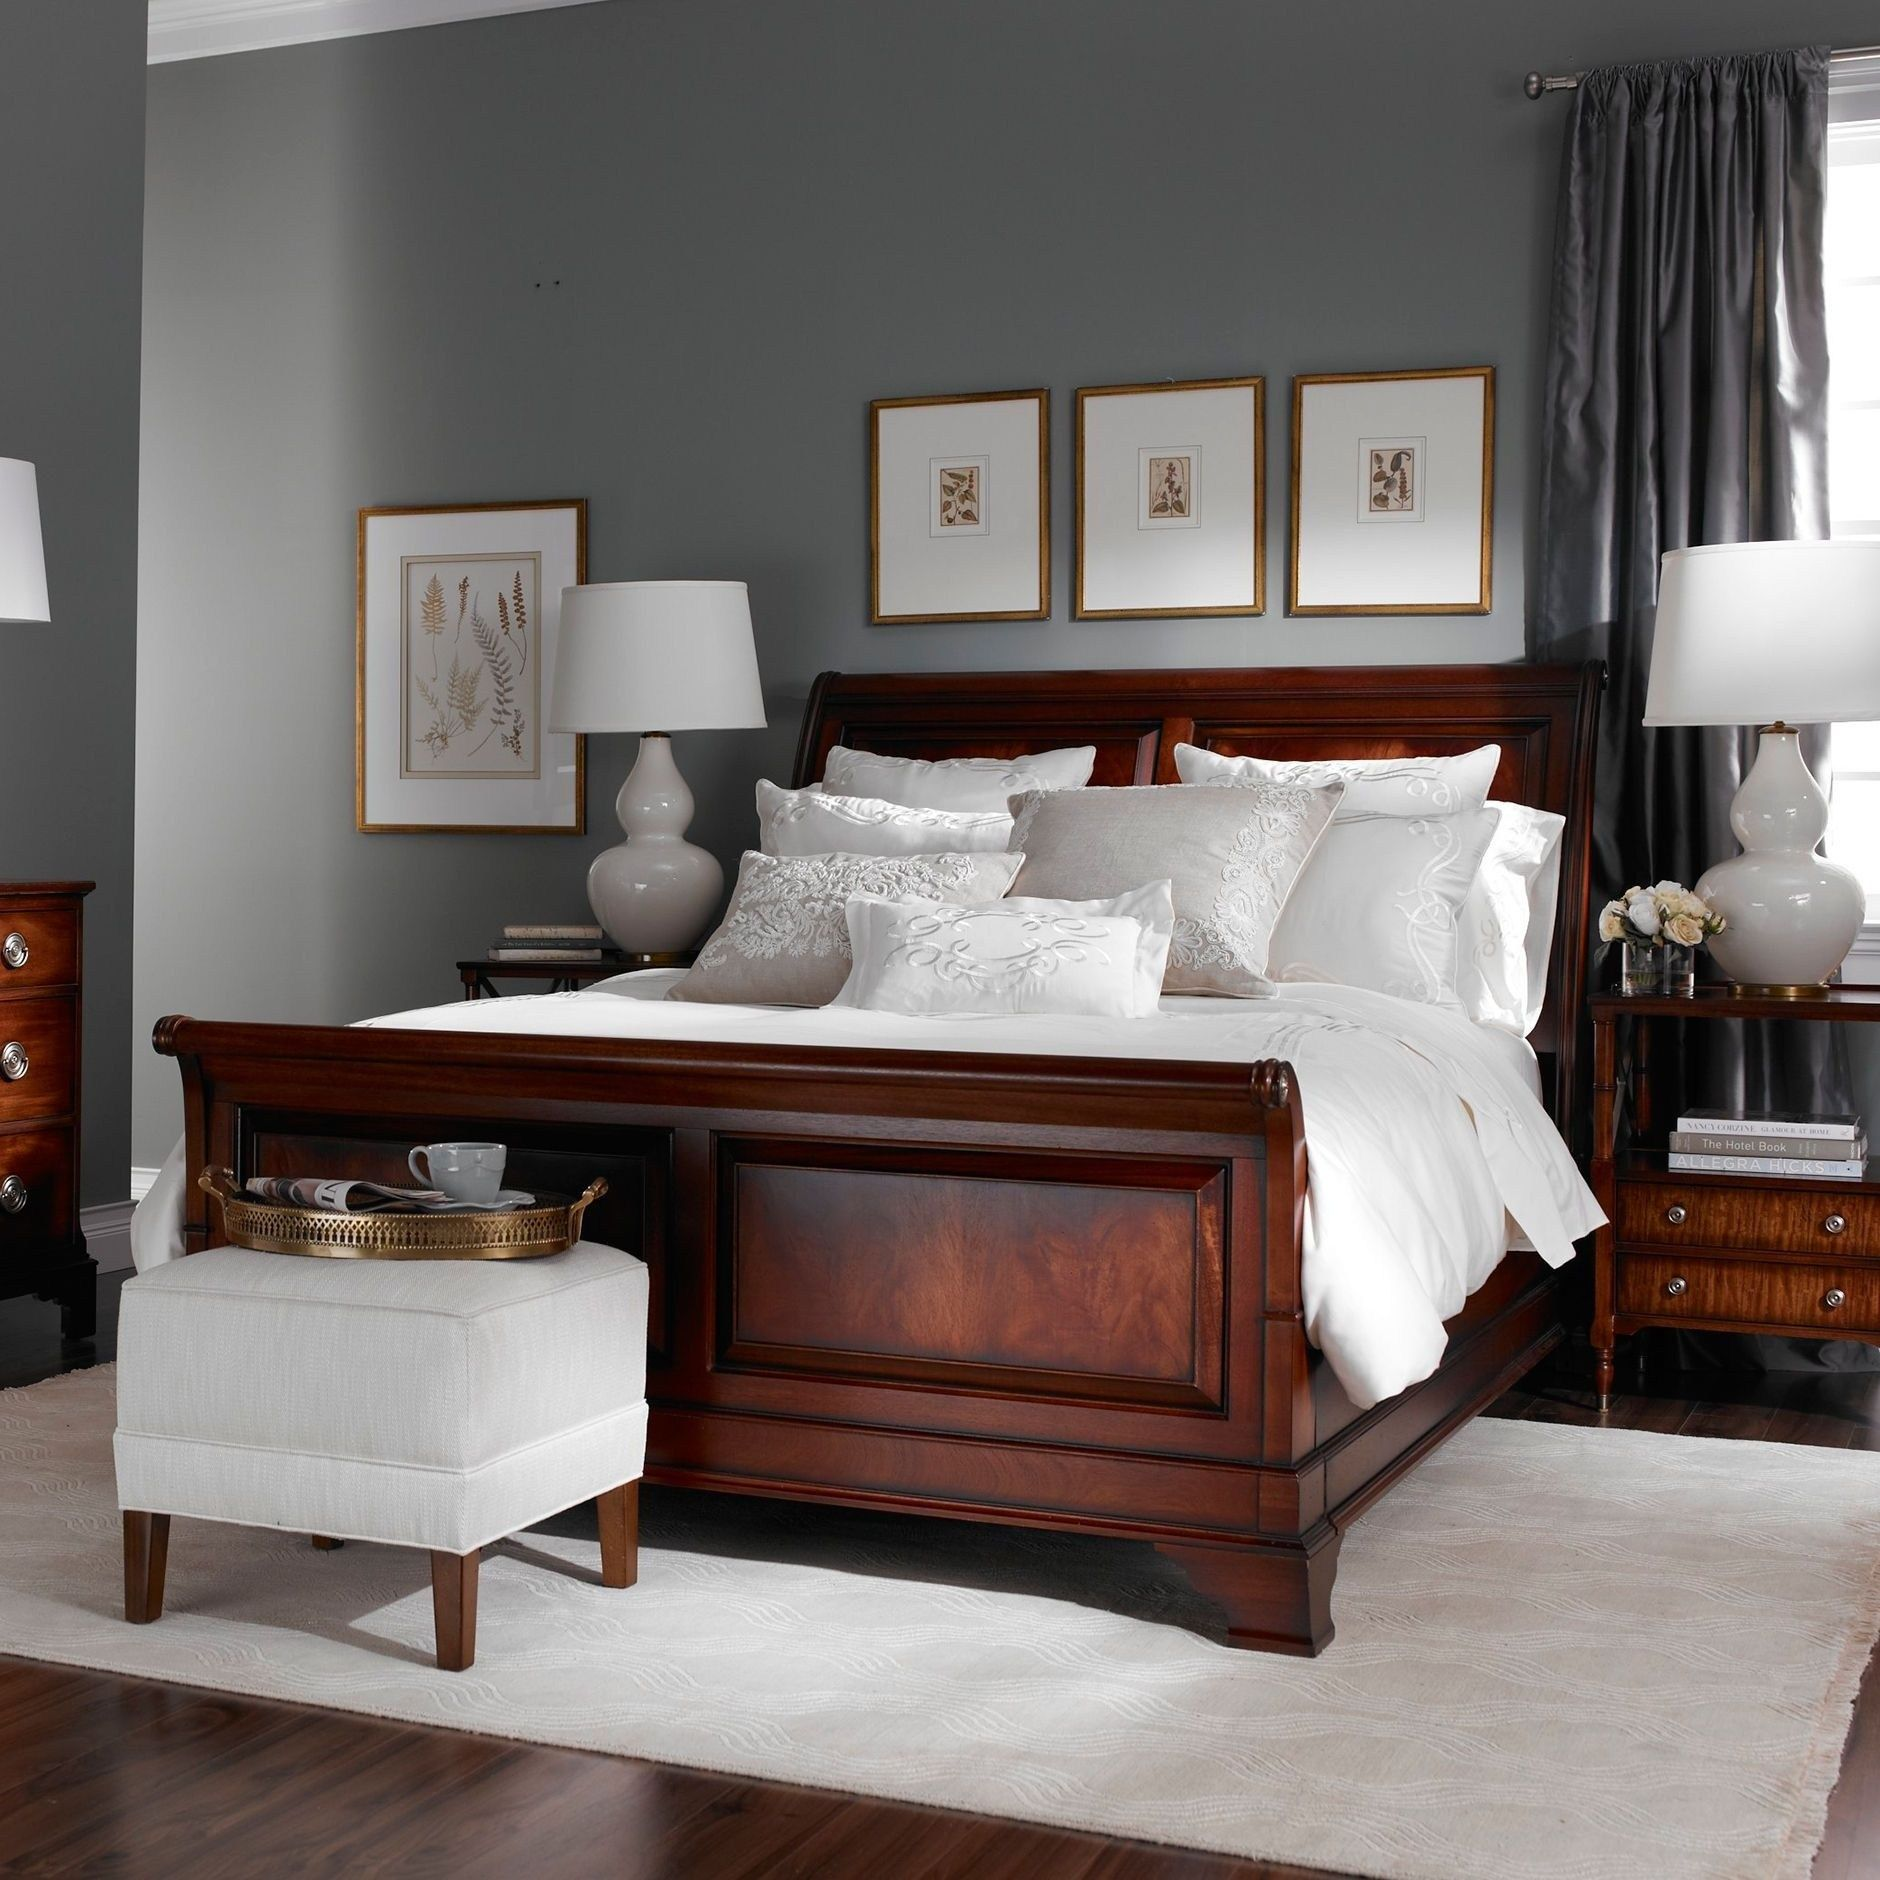 10+ Popular Bedroom Decorating Ideas With Dark Wood Furniture